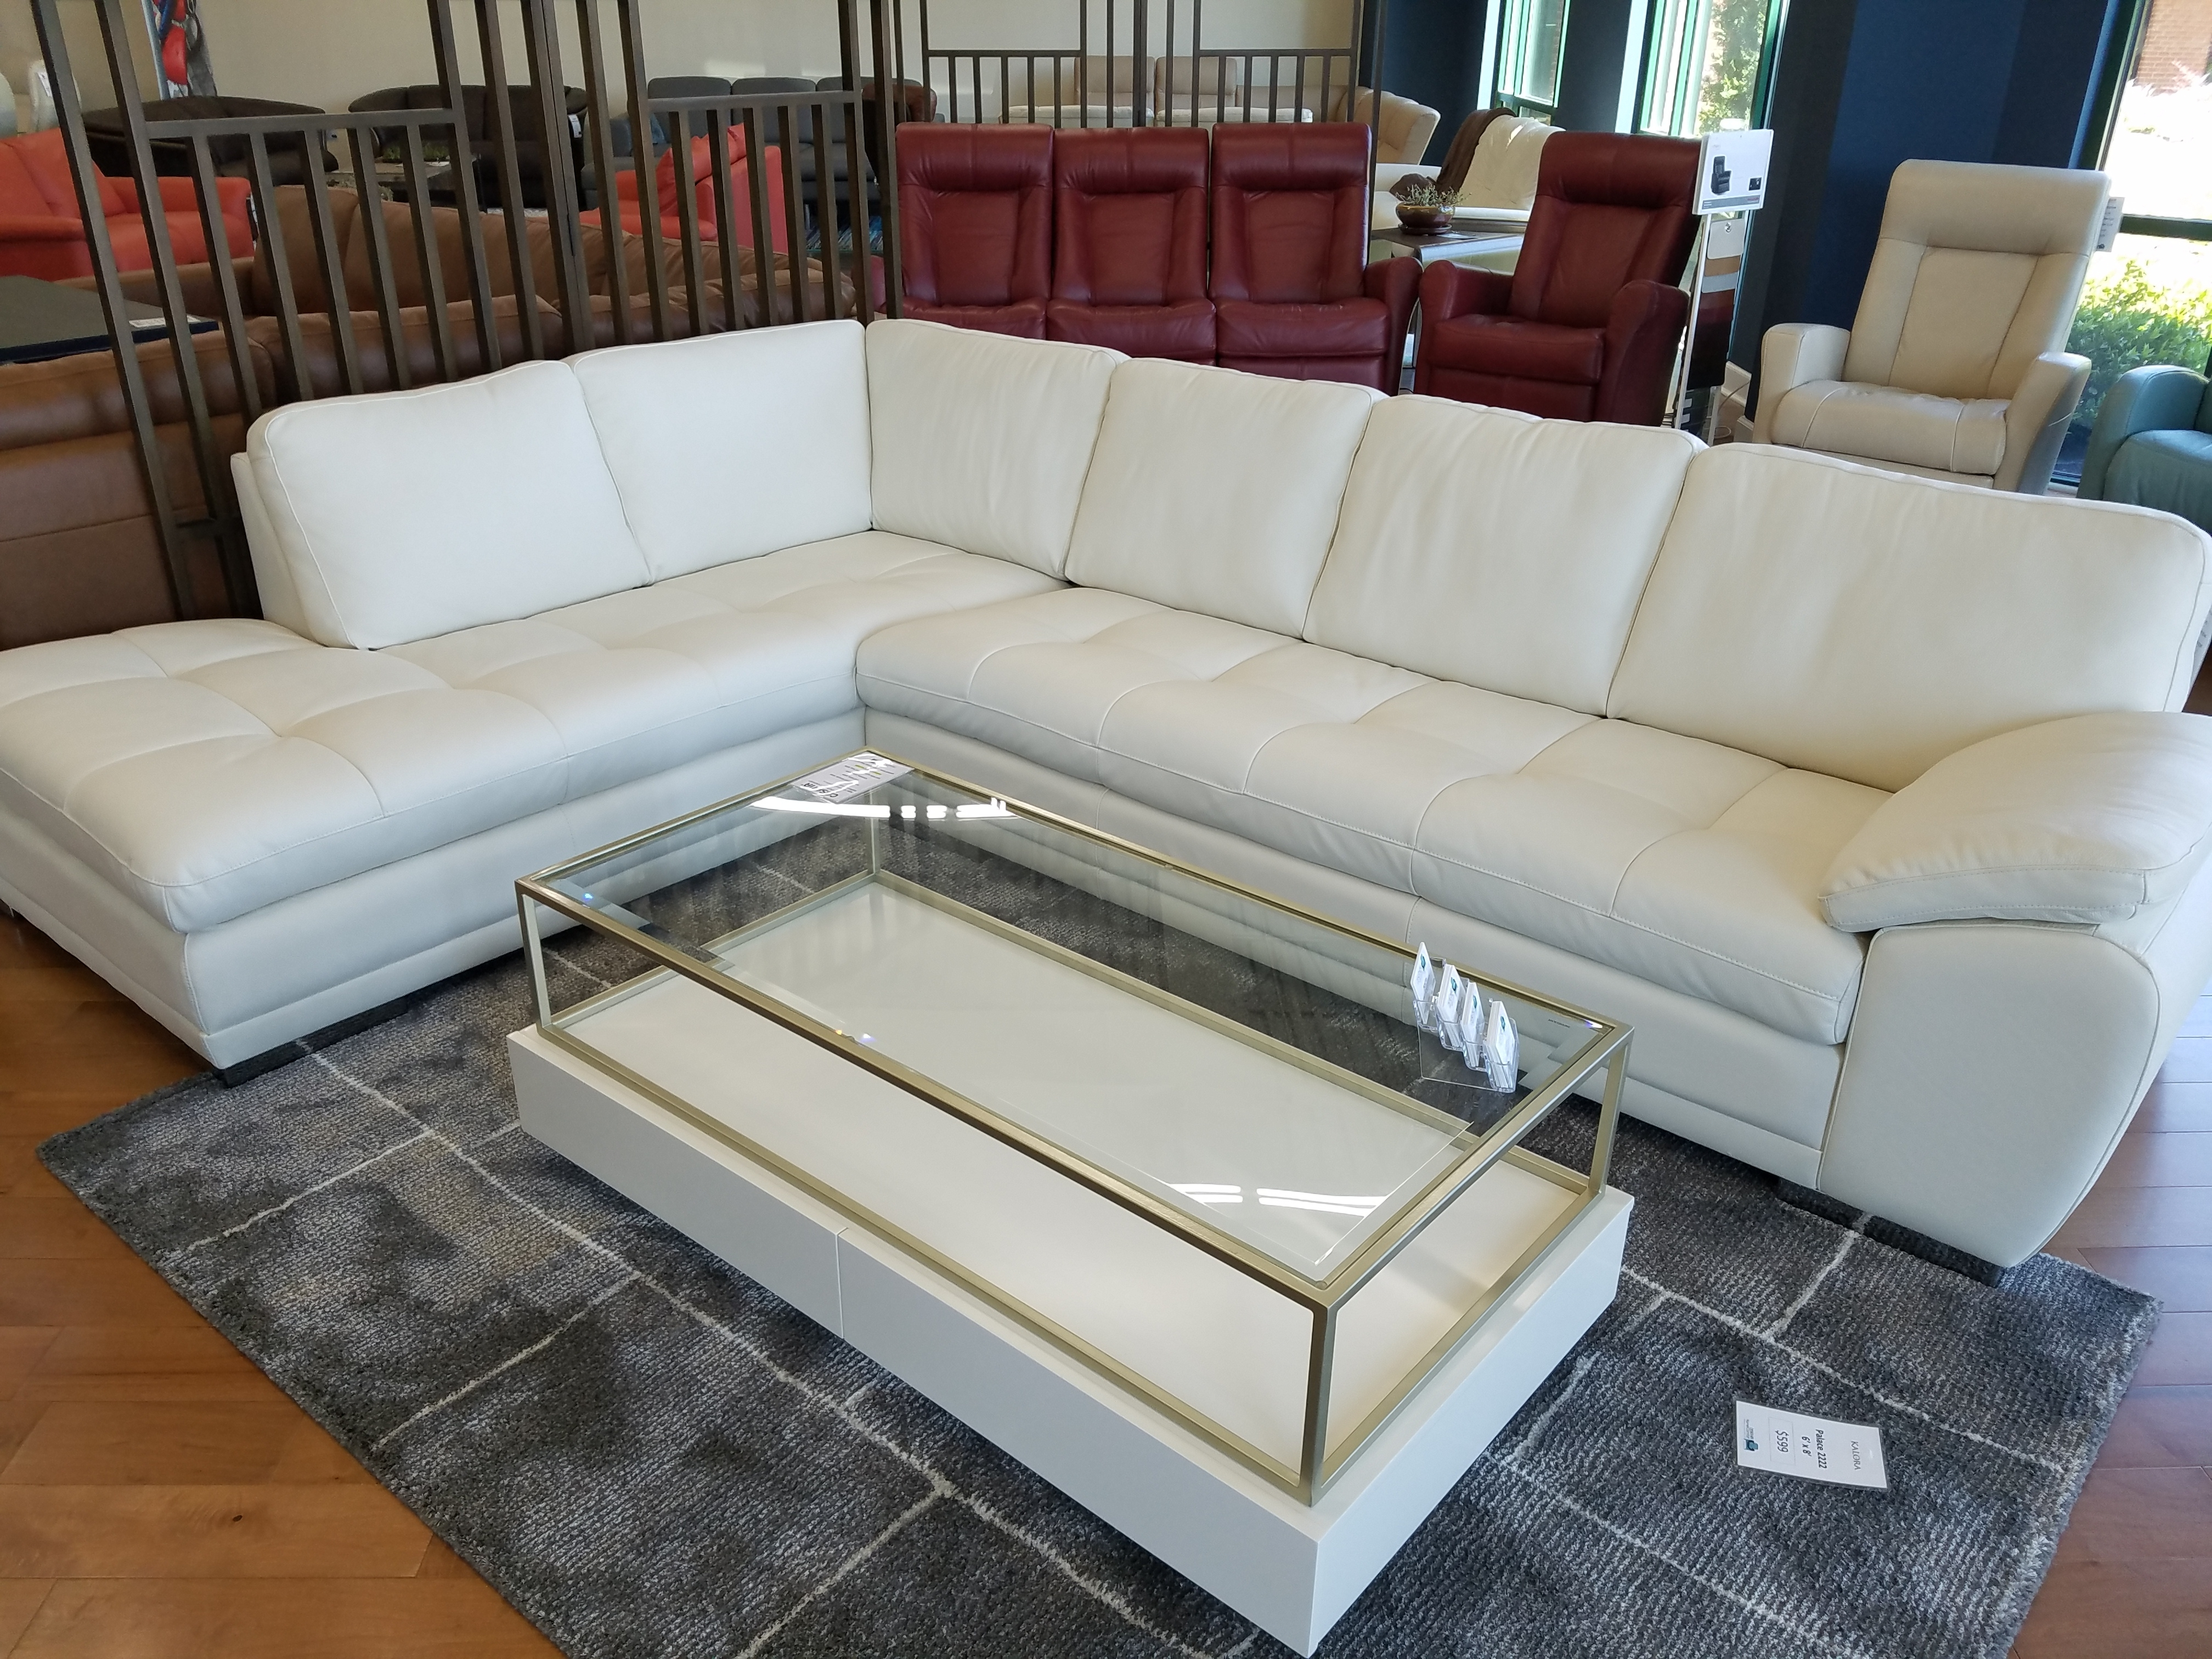 Palliser Miami Sectional Lhf Chaise Bumper And Rhf Sofa Leather Regarding Miami Sectional Sofas (Image 9 of 10)